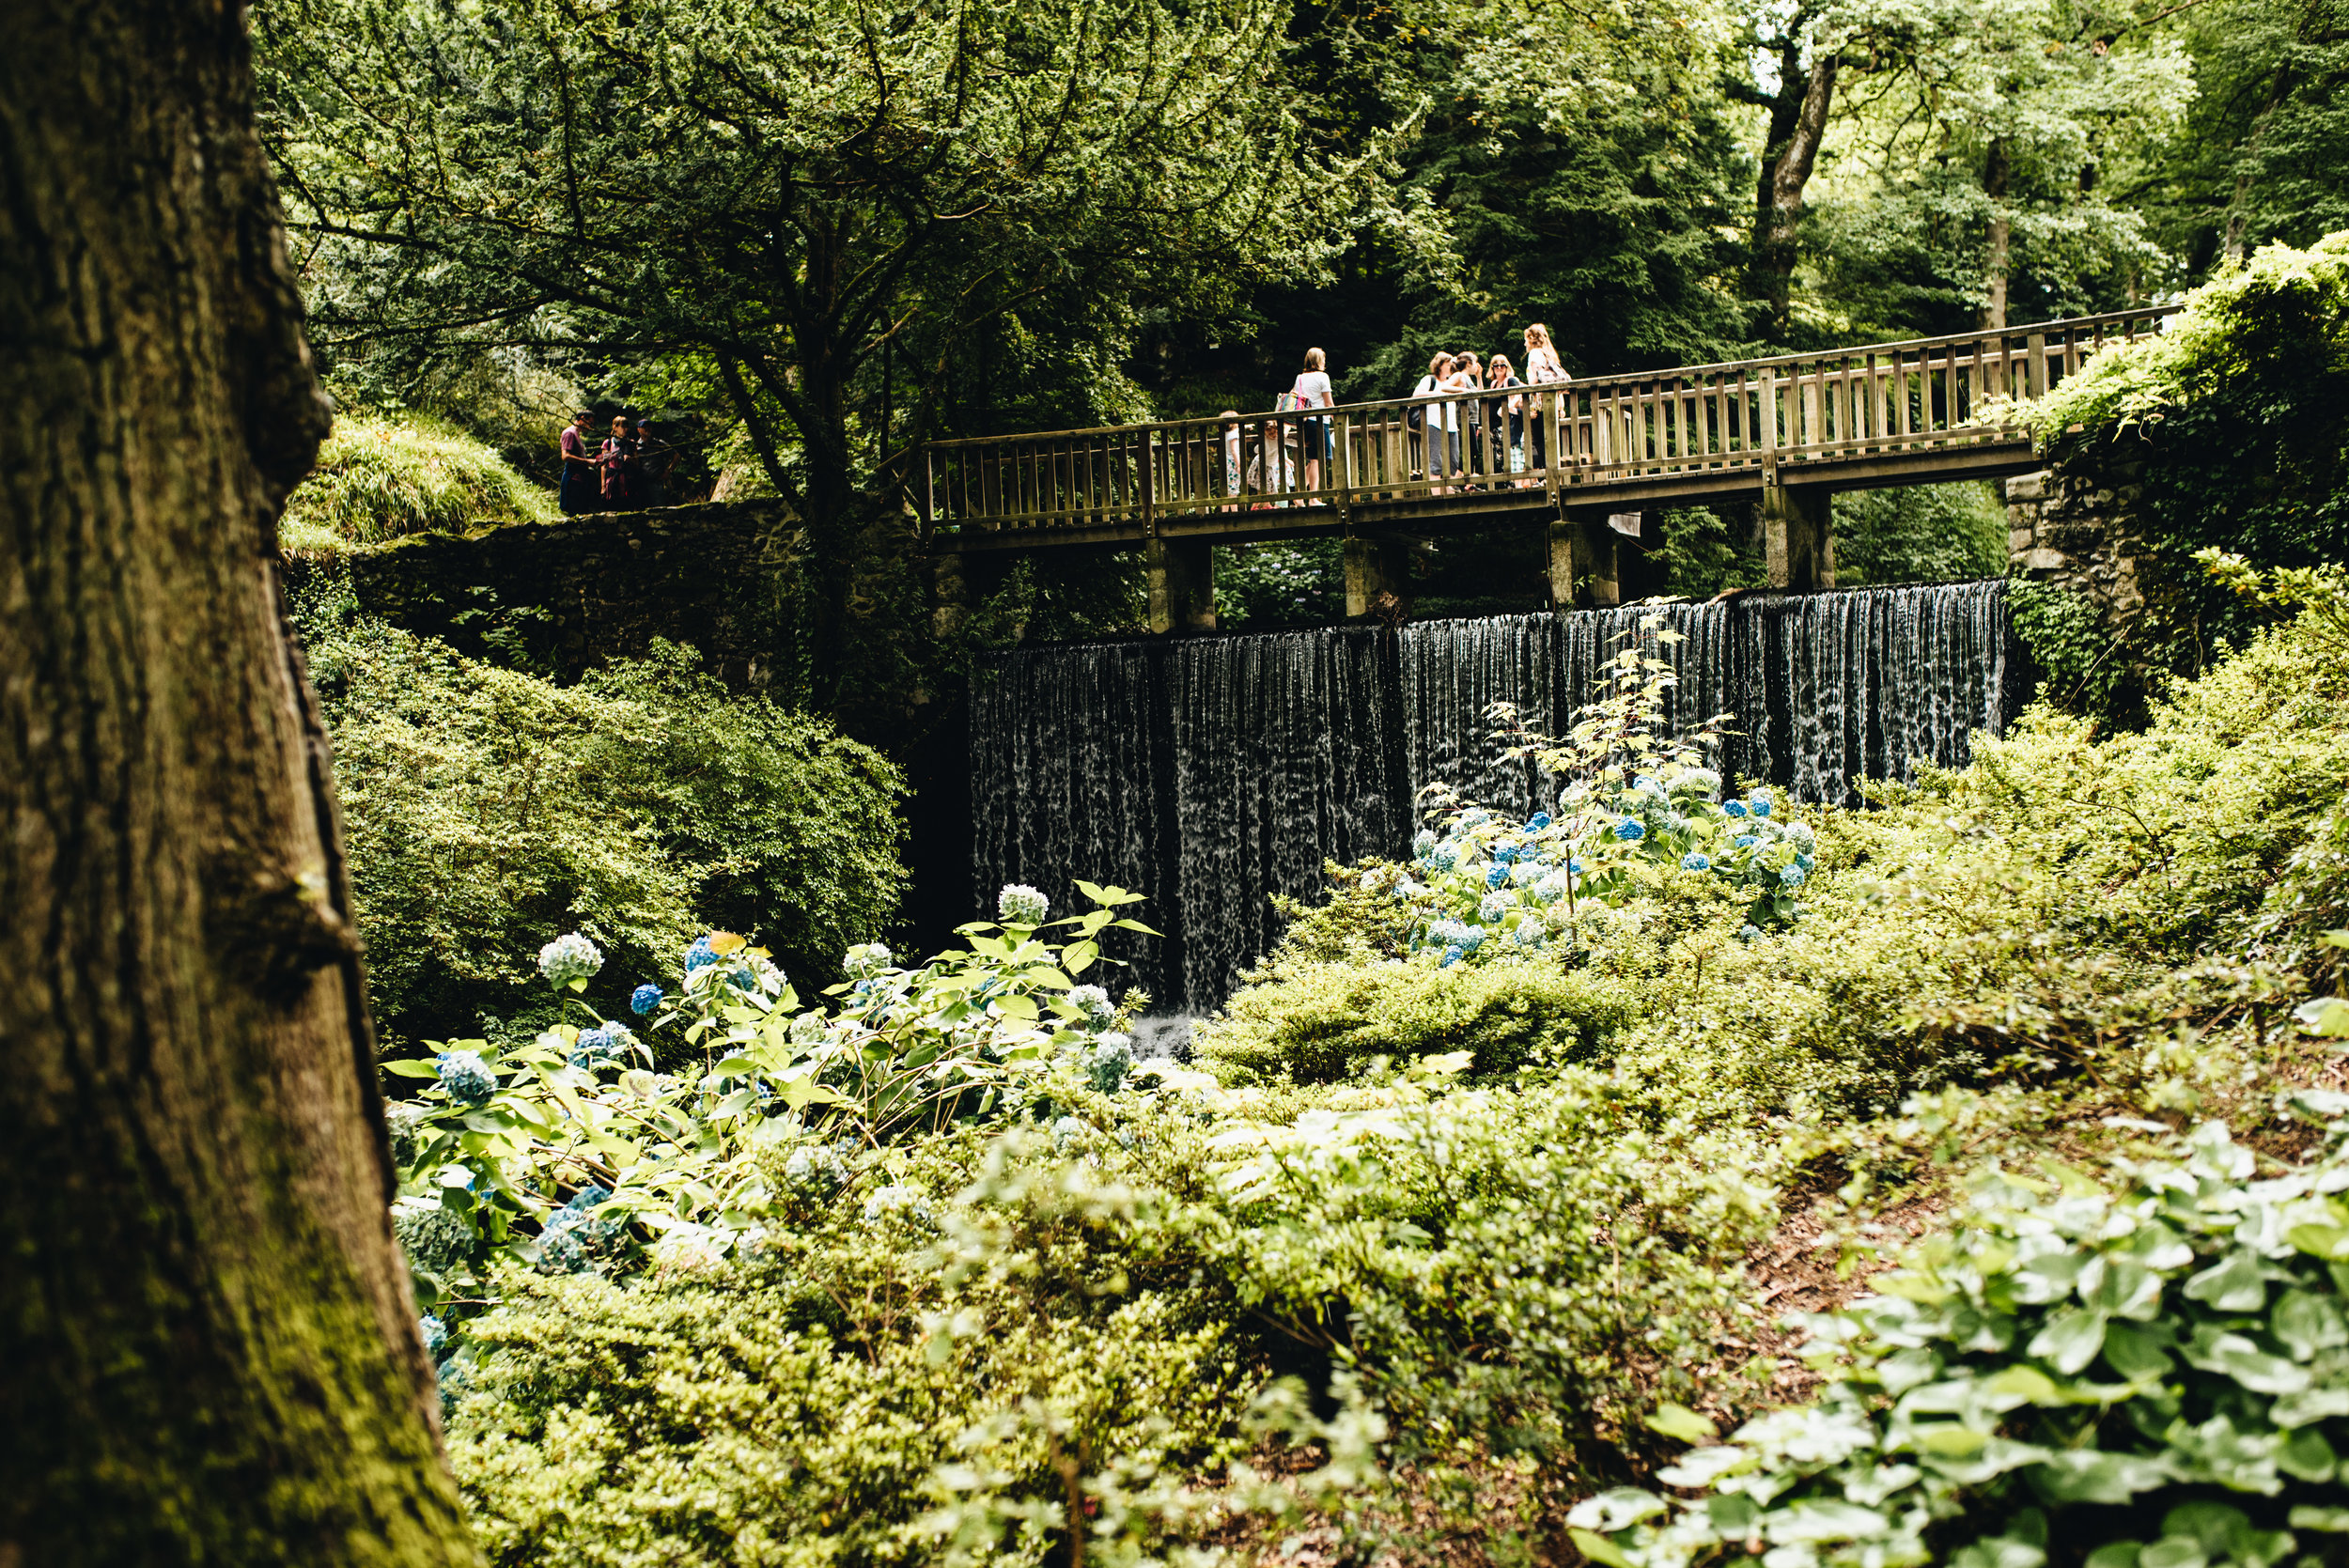 A holiday in North Wales - Bodnant Gardens